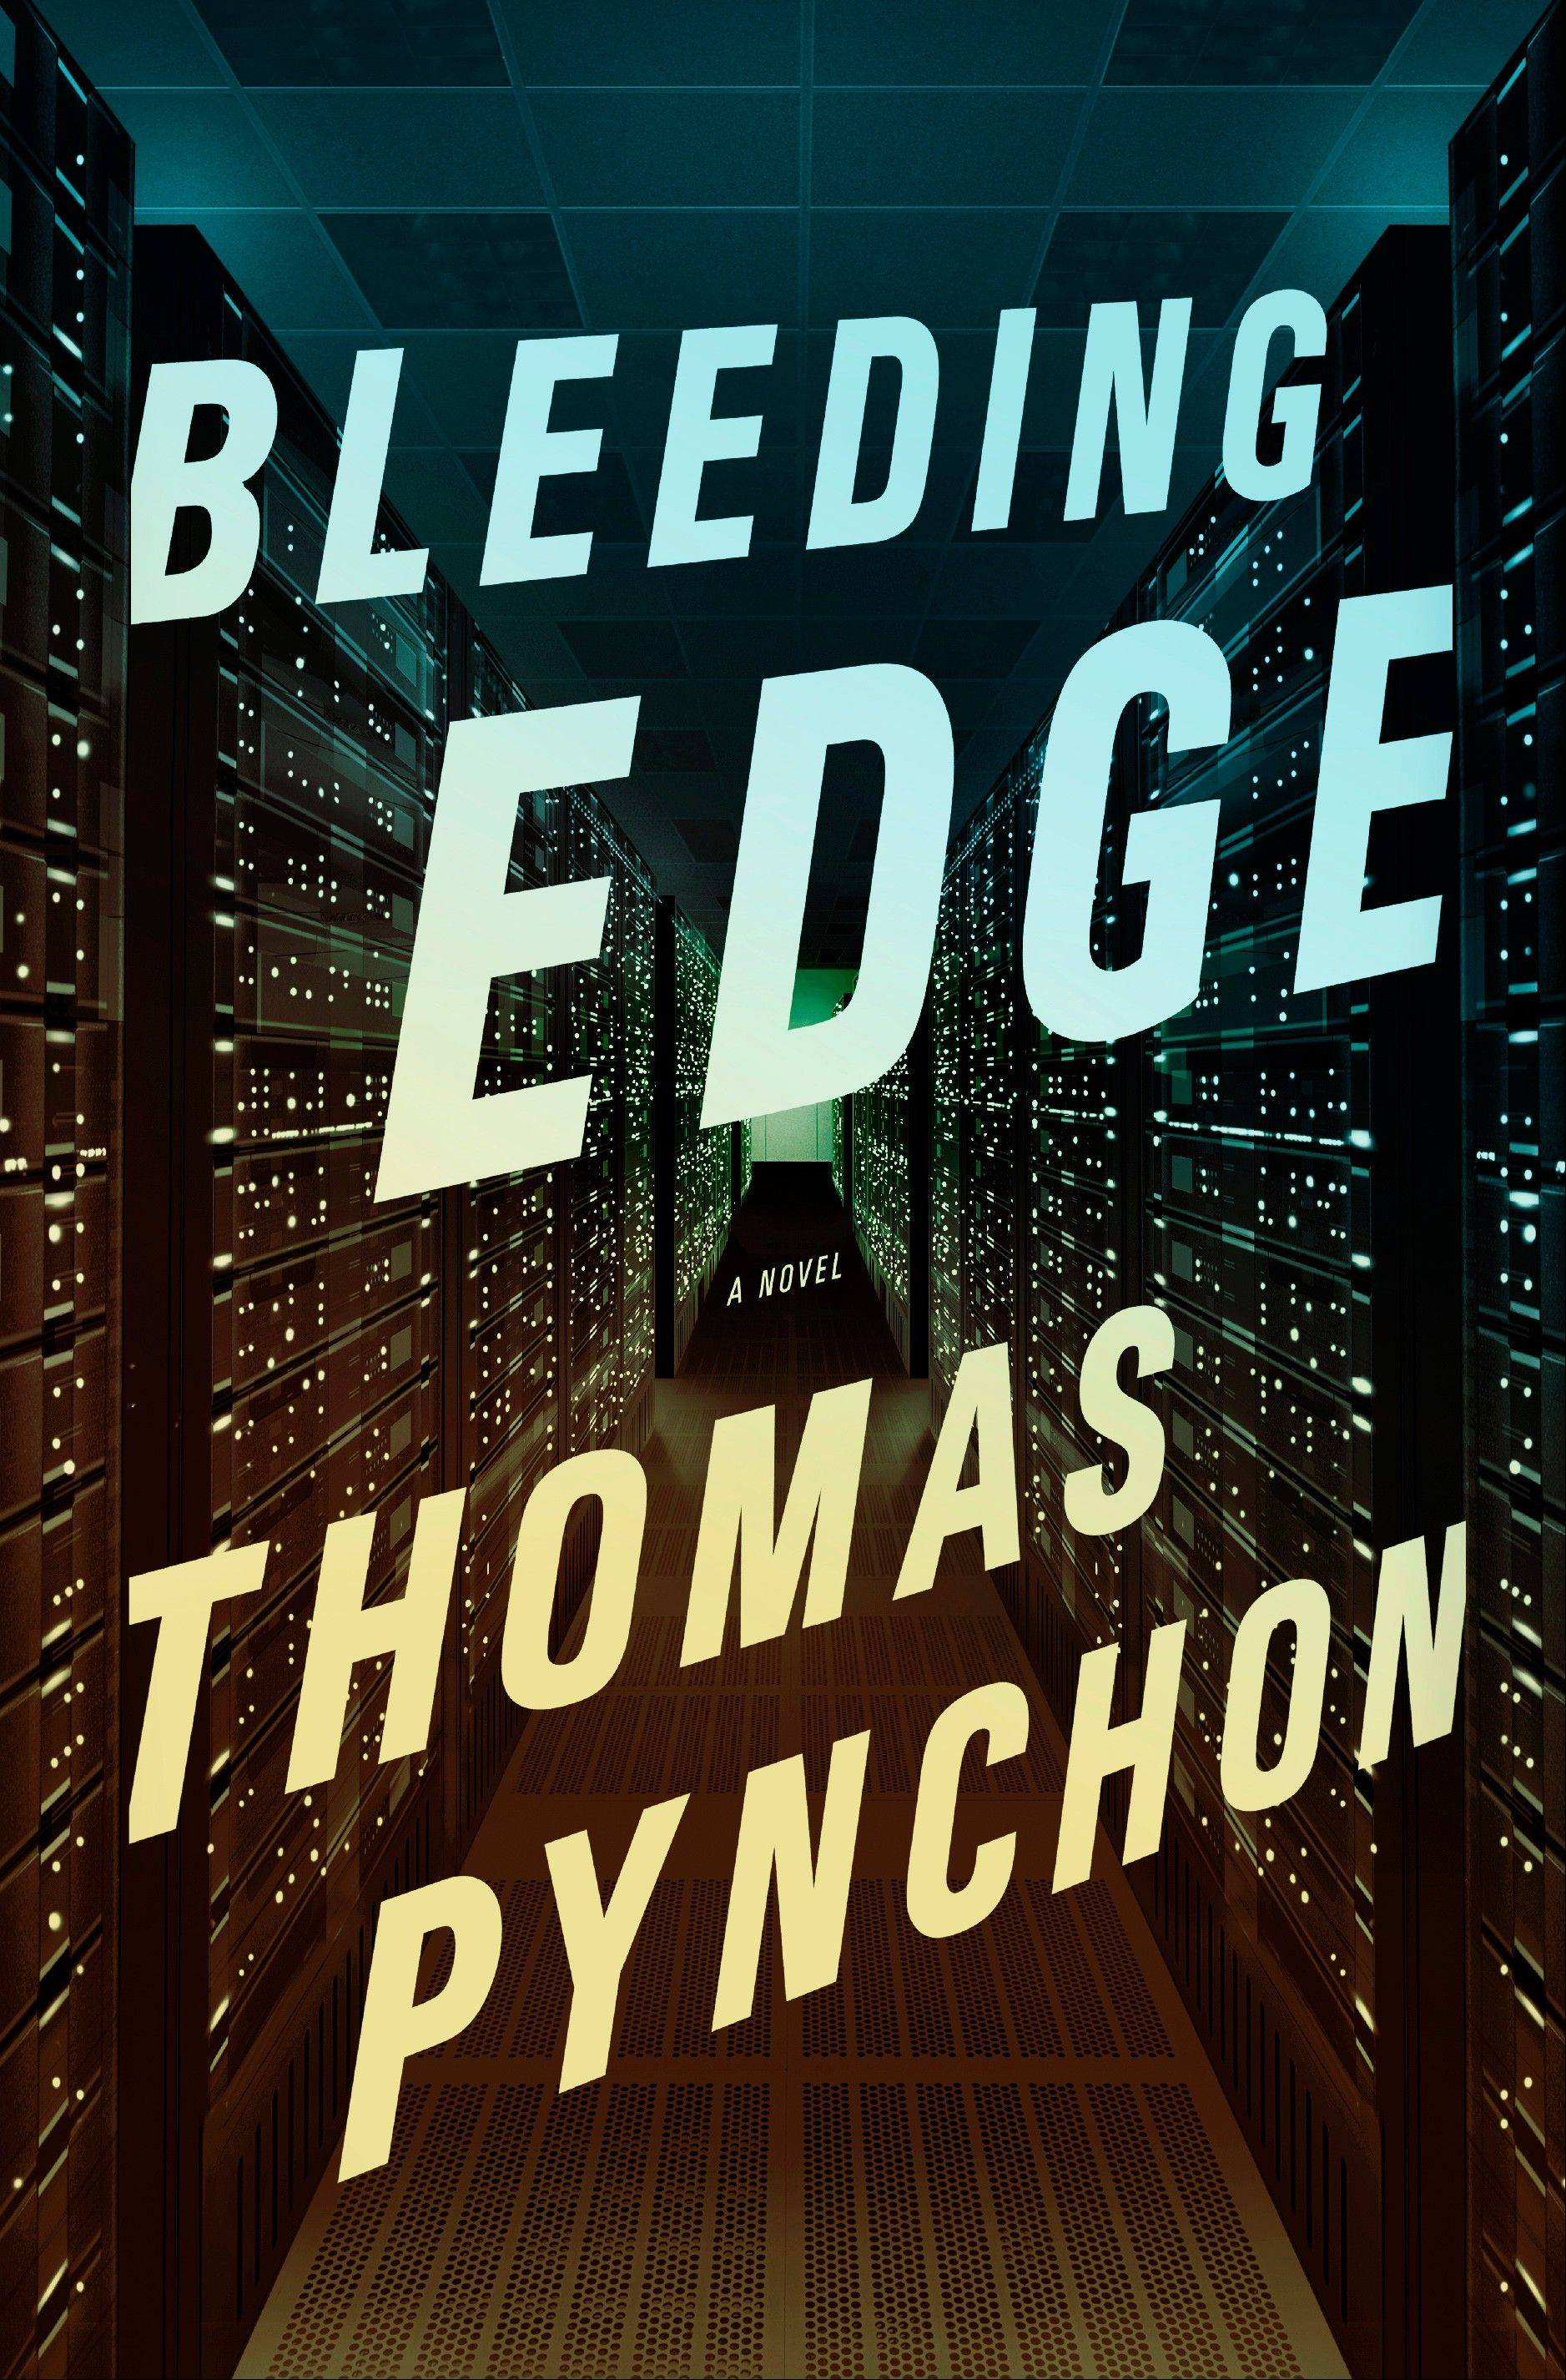 """Bleeding Edge"" by Thomas Pynchon"